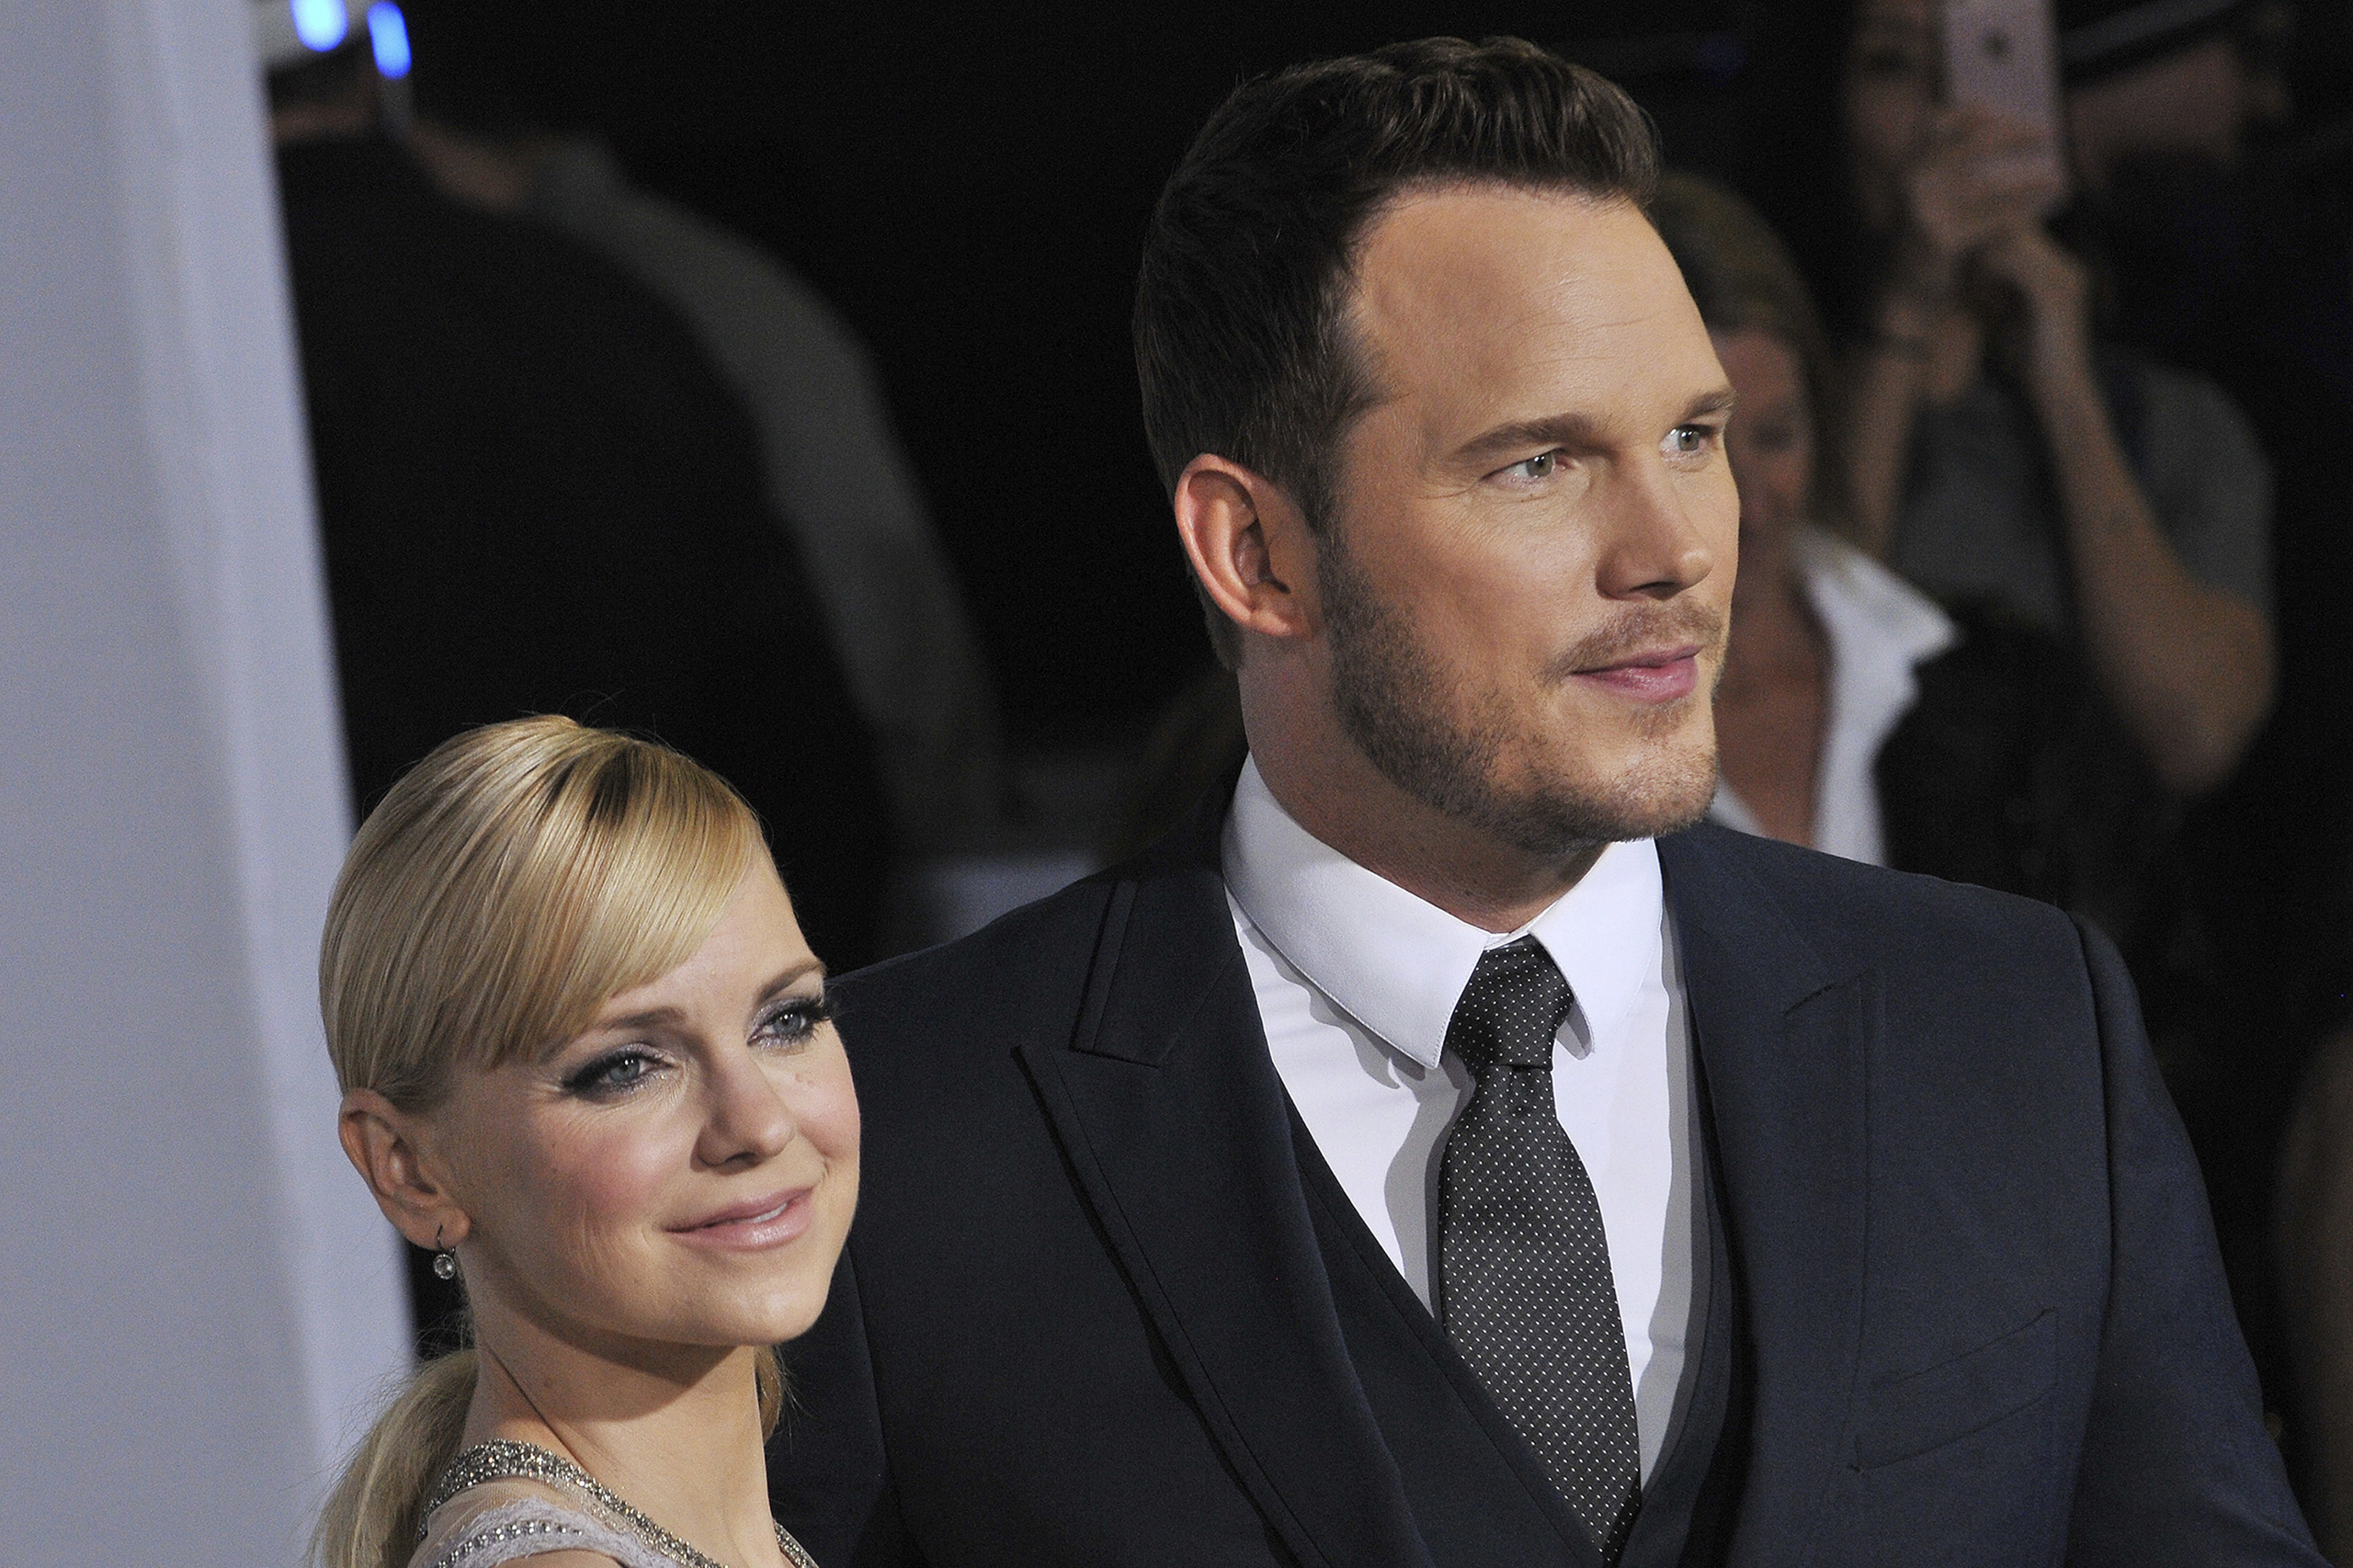 Anna Faris and Chris Pratt arrive at the  Passengers  Los Angeles Premiere held at the Fox Village Theatre in Westwood, CA on Dec. 14, 2016.